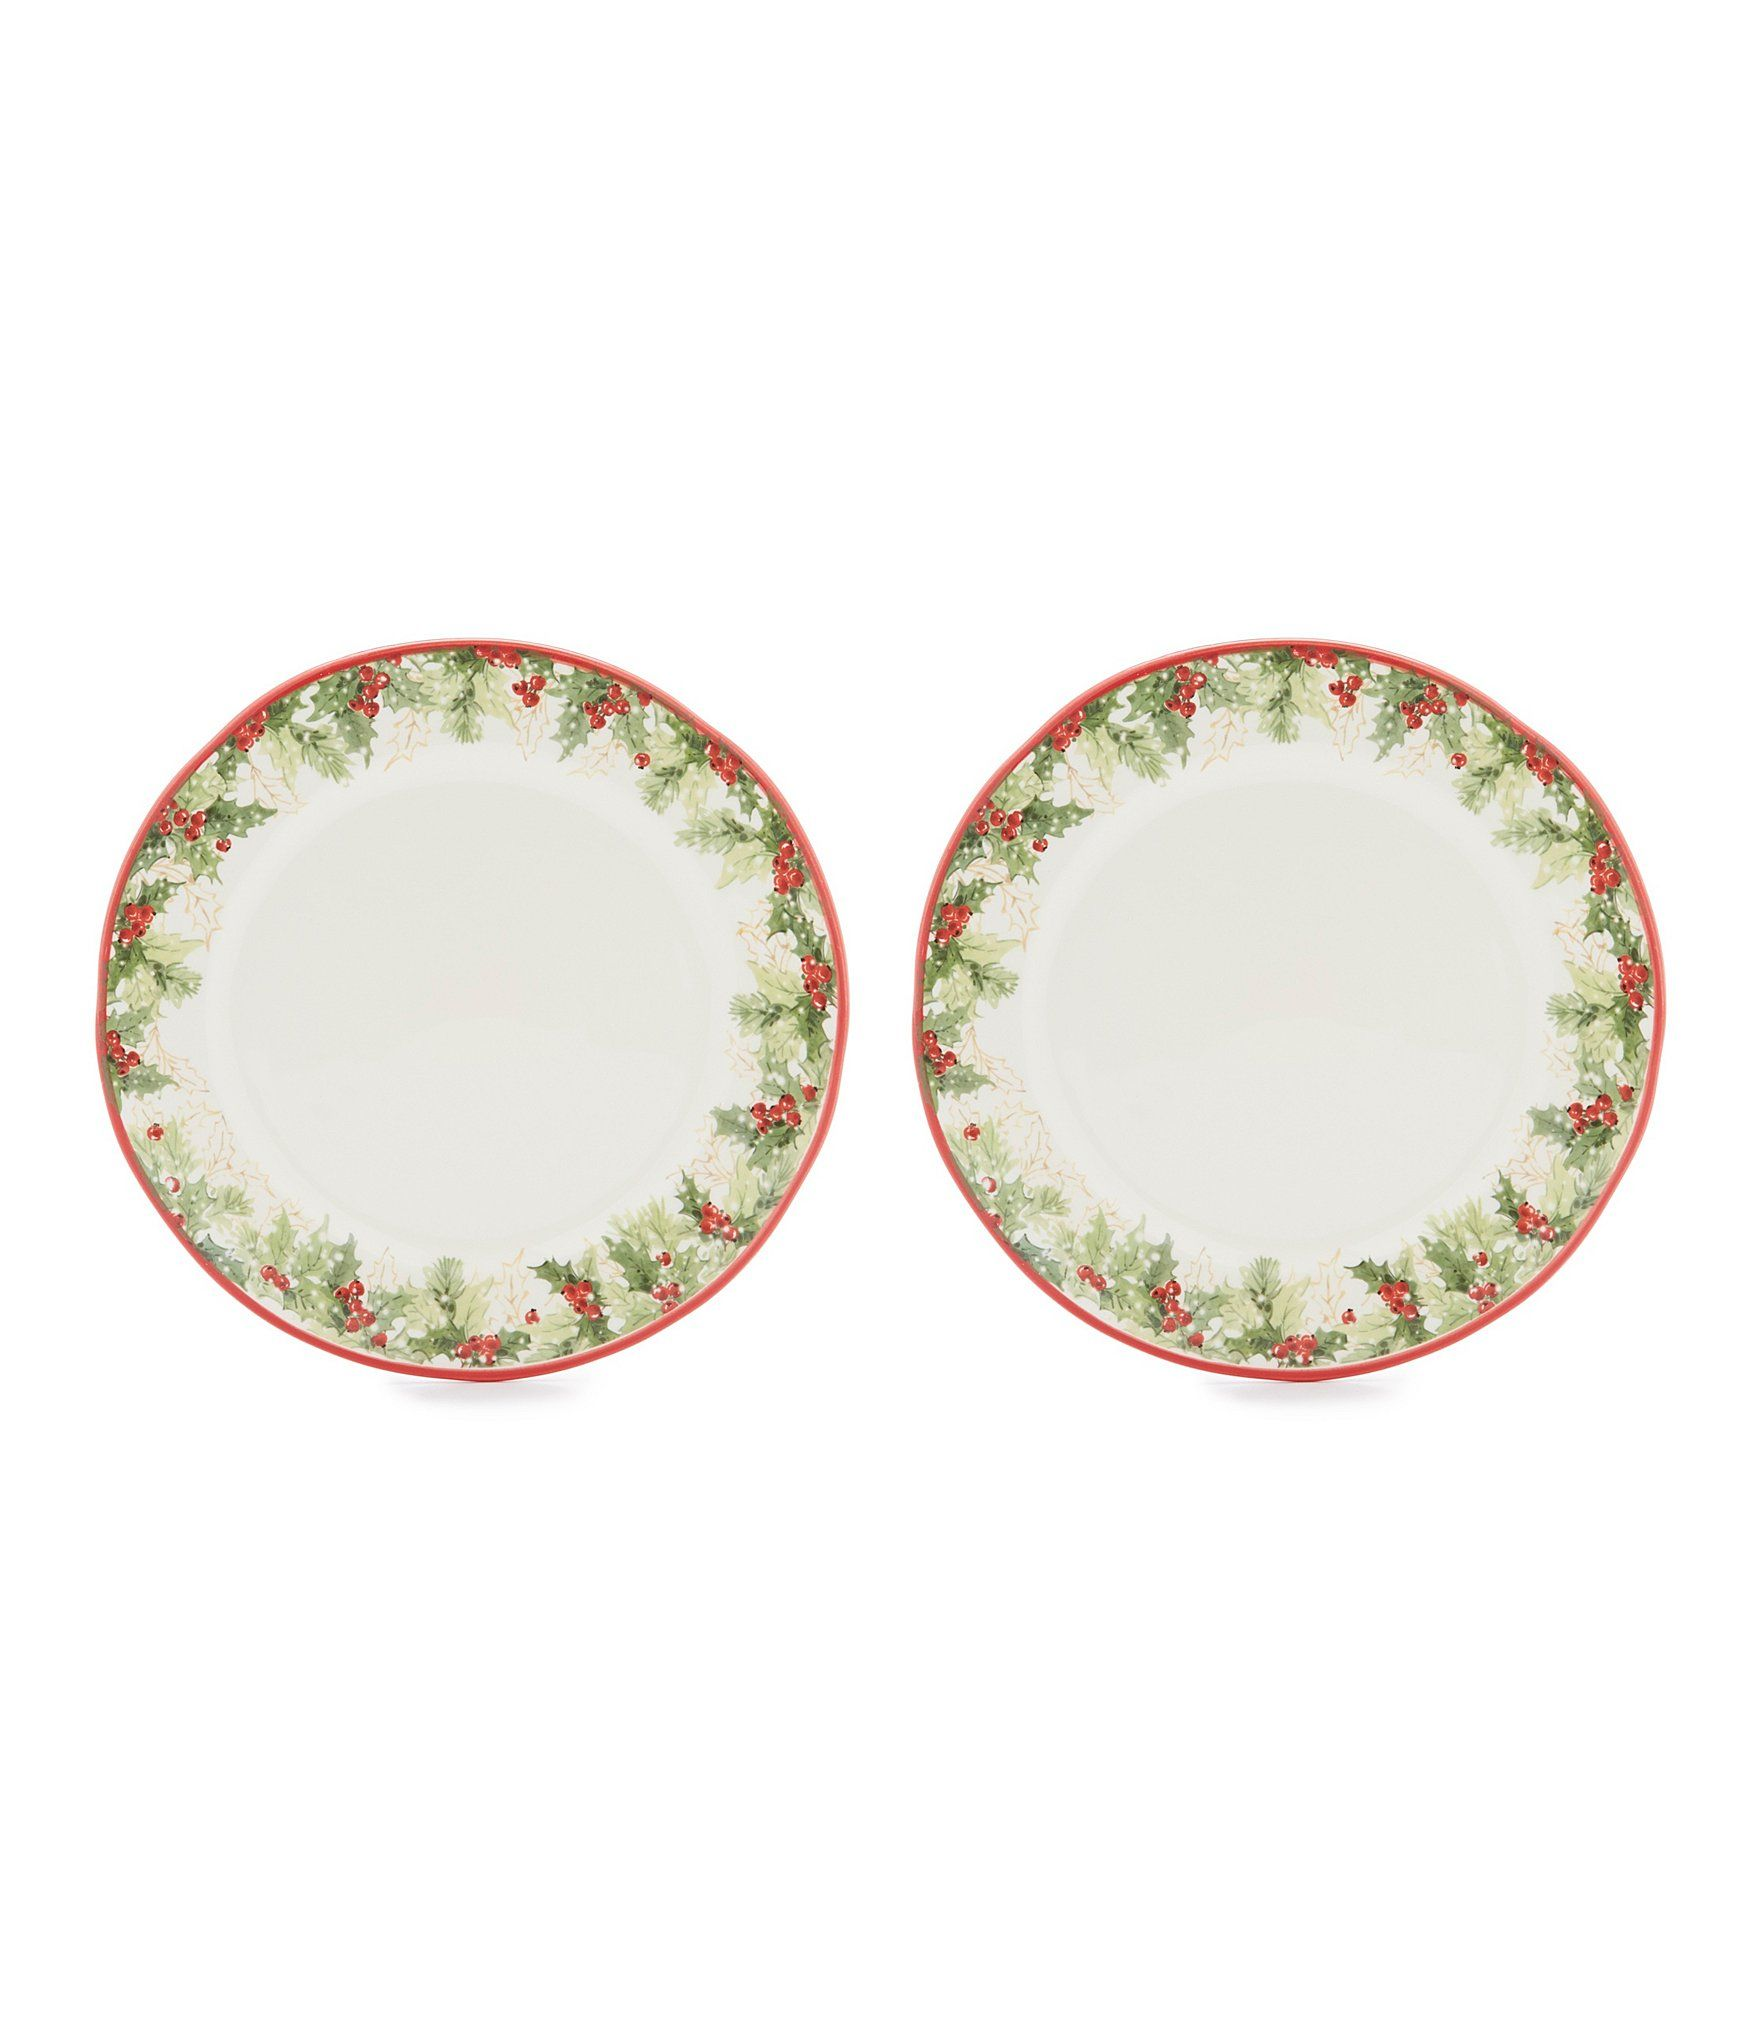 Southern Living 2Piece Christmas Dinner Plate Set #Dillards  sc 1 st  Pinterest & Southern Living 2Piece Christmas Dinner Plate Set #Dillards | 2018 ...